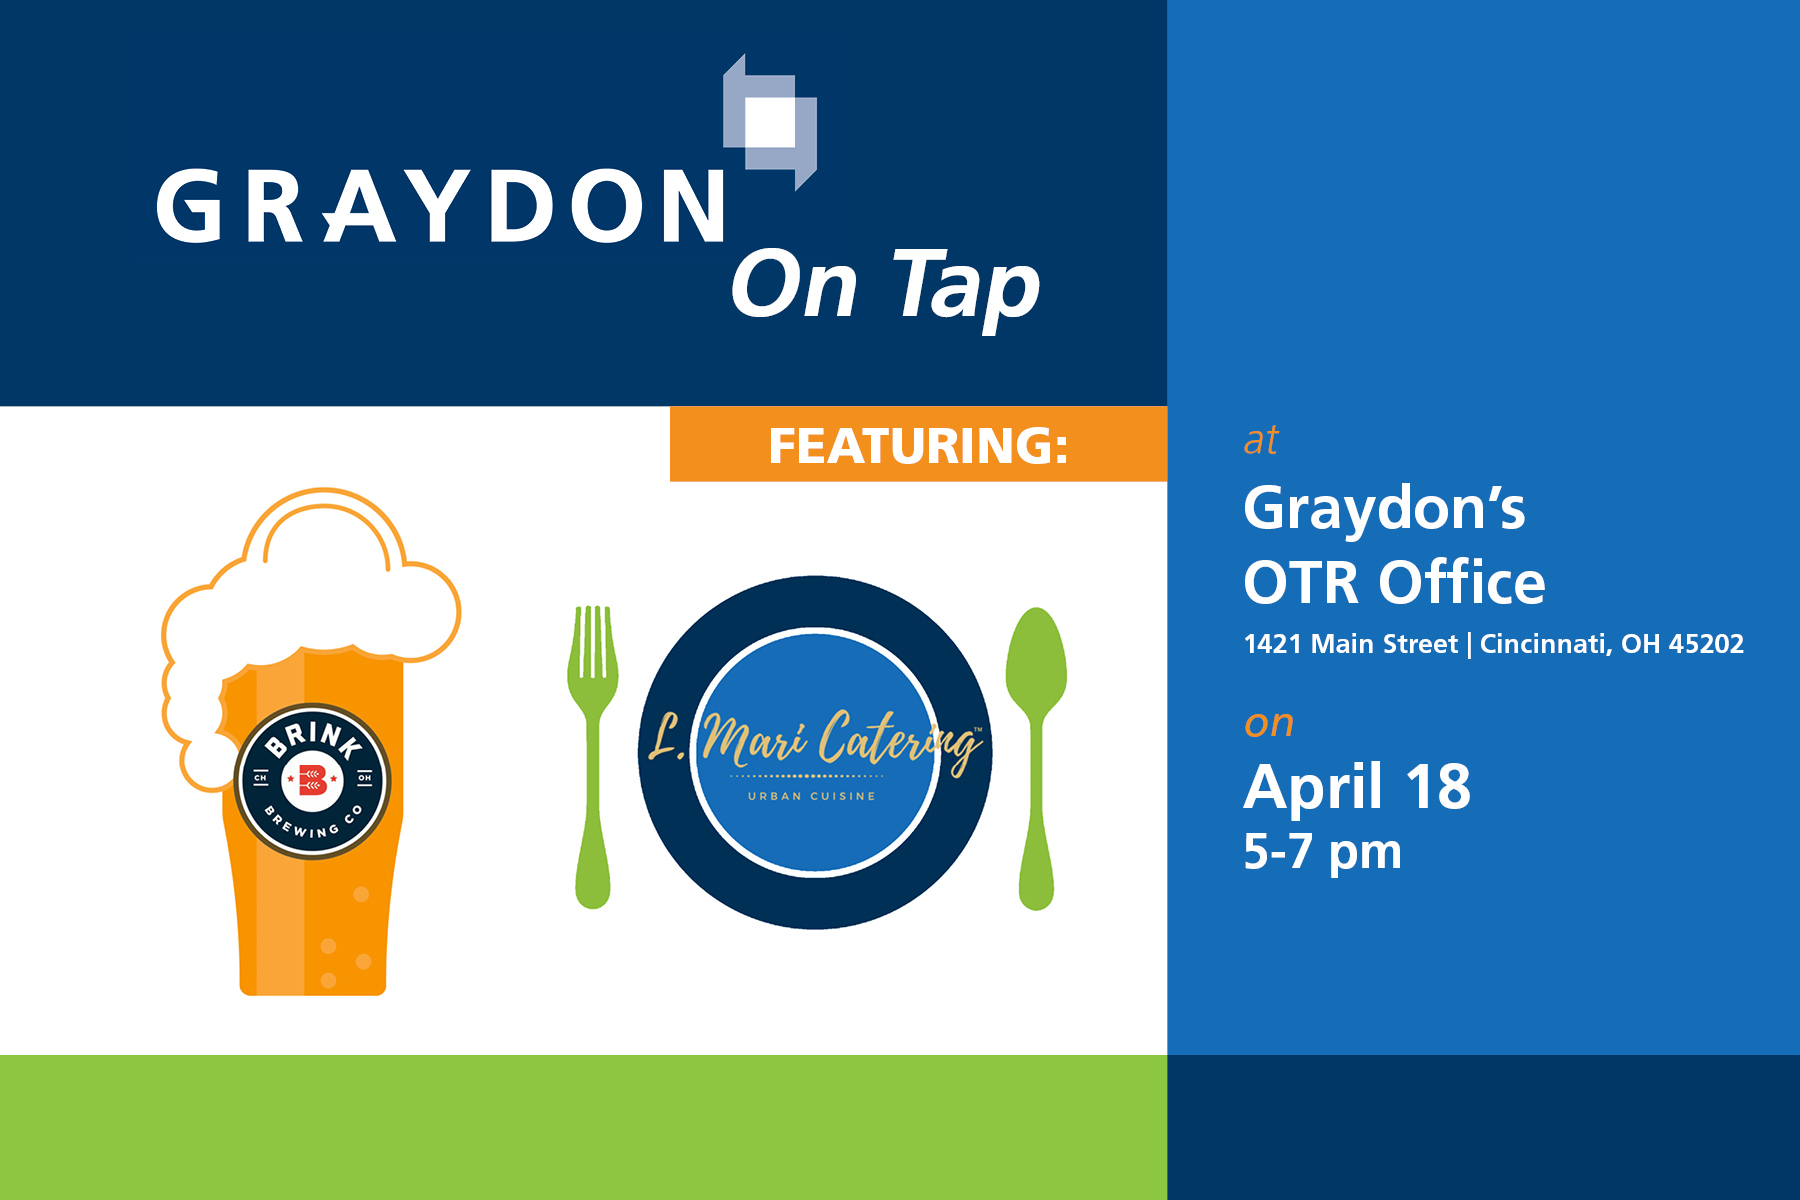 Graydon on Tap Brink Brewery and El Mari Catering